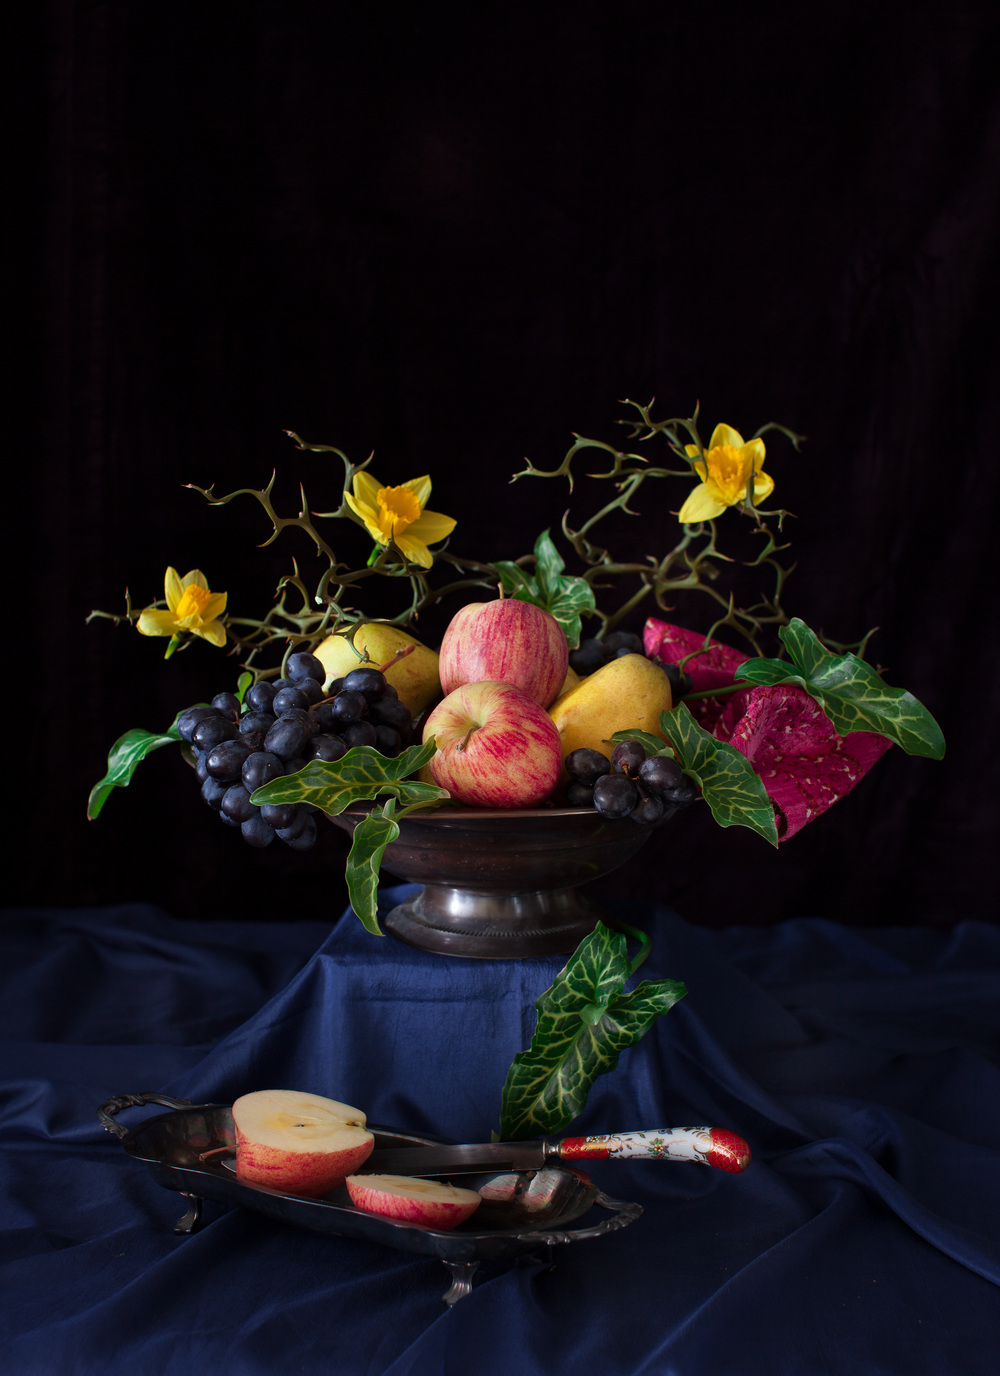 Still Life with Apples 2013